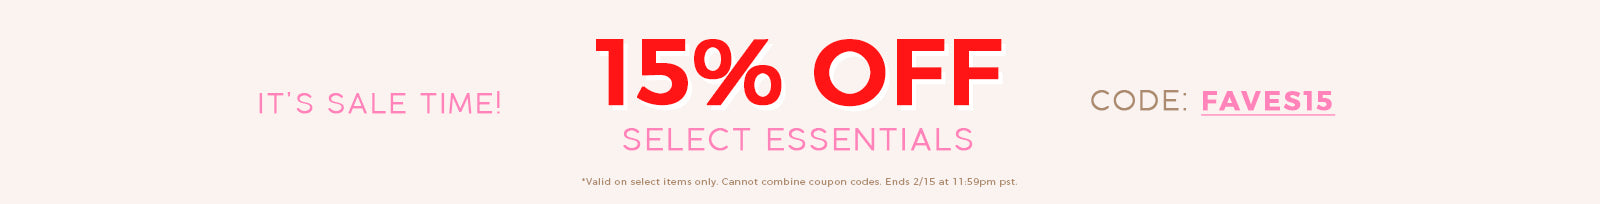 President's Day Sale - 15% off Select Essentials